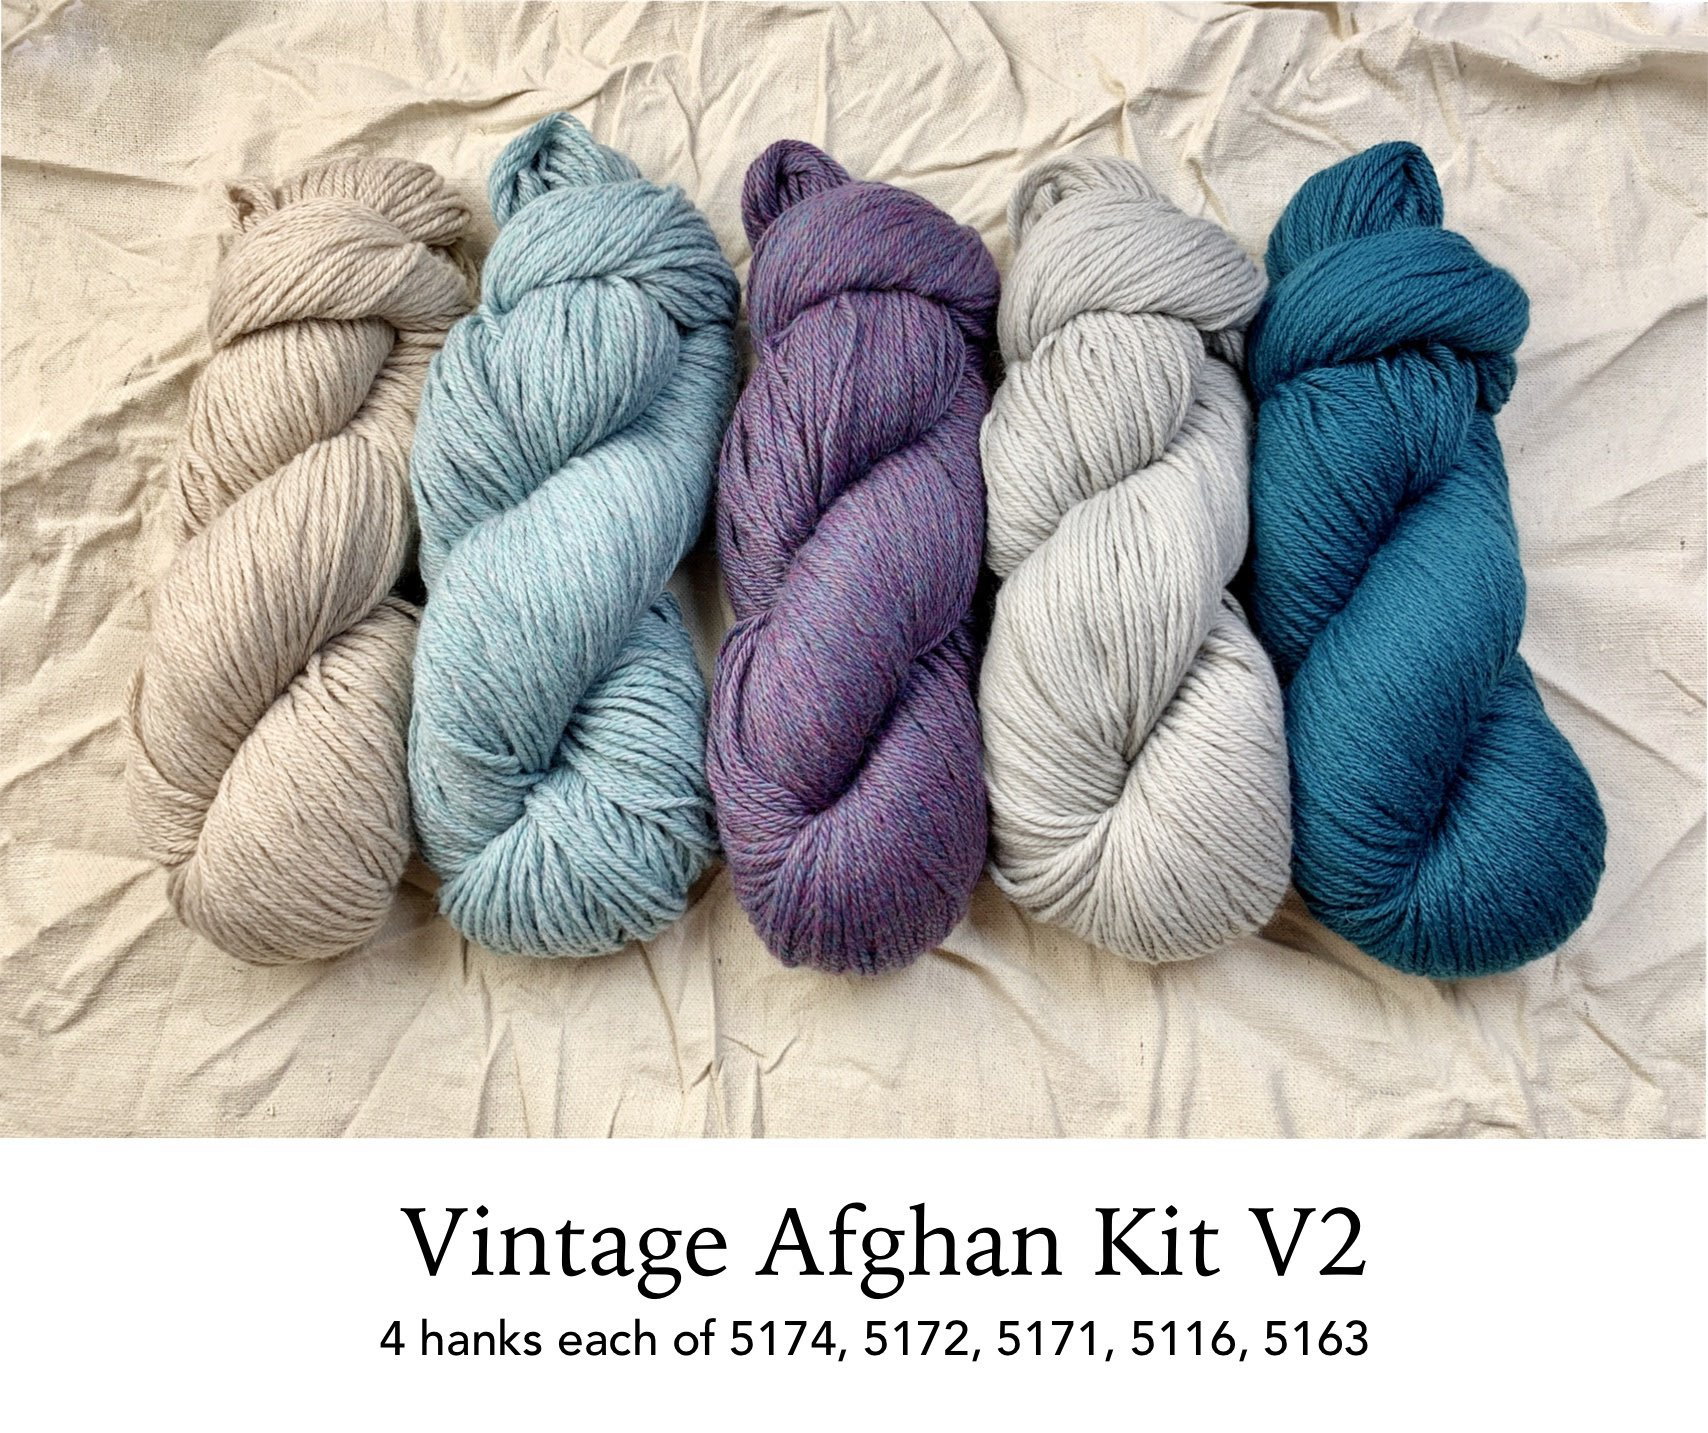 Norah's Vintage Afghan Drop Ship Kit